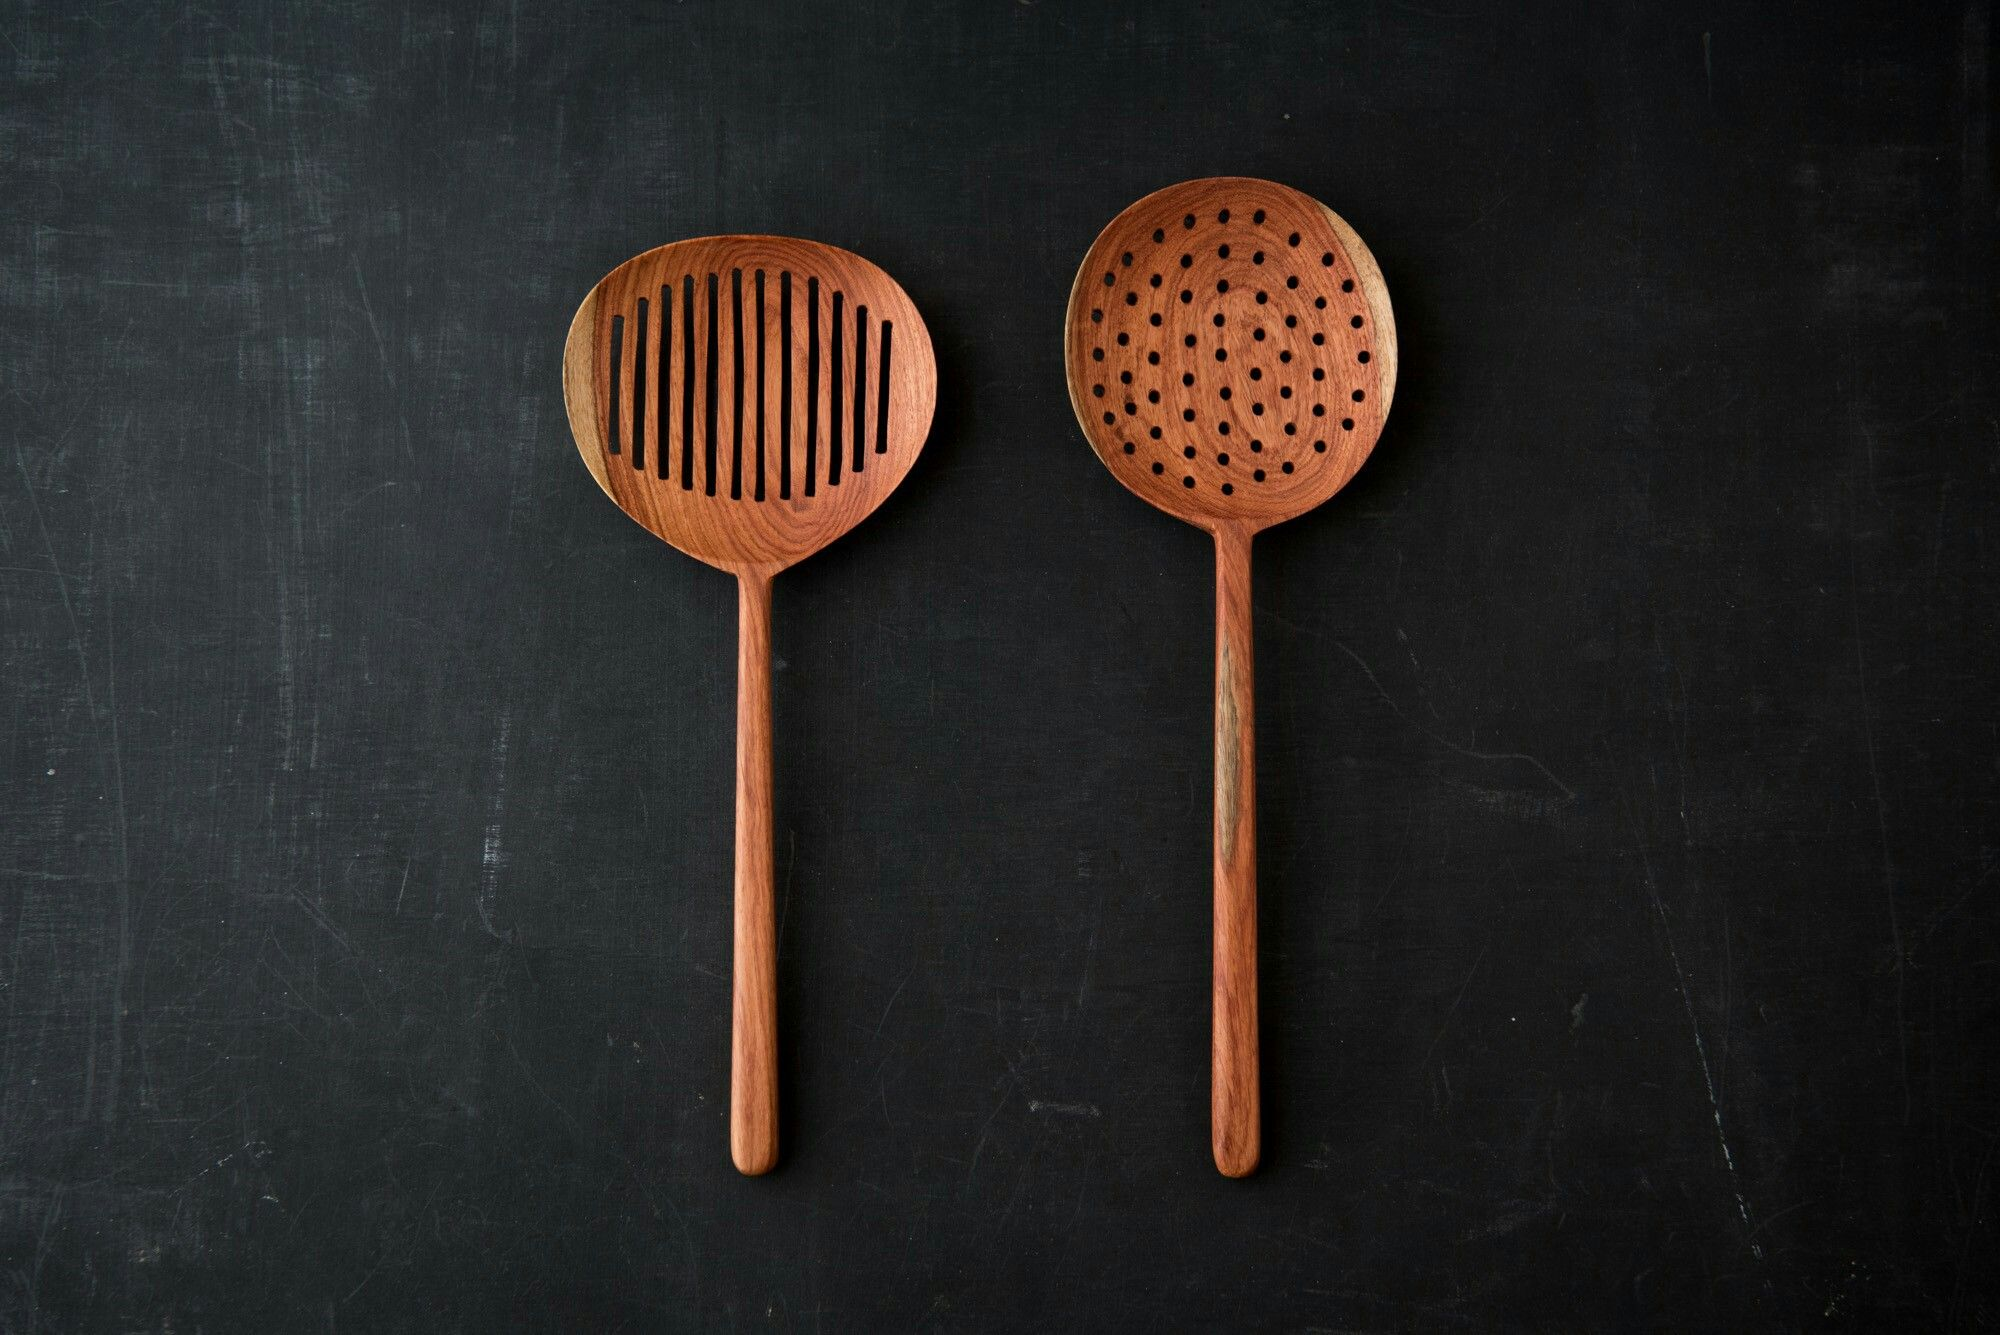 Beautiful wooden spoons